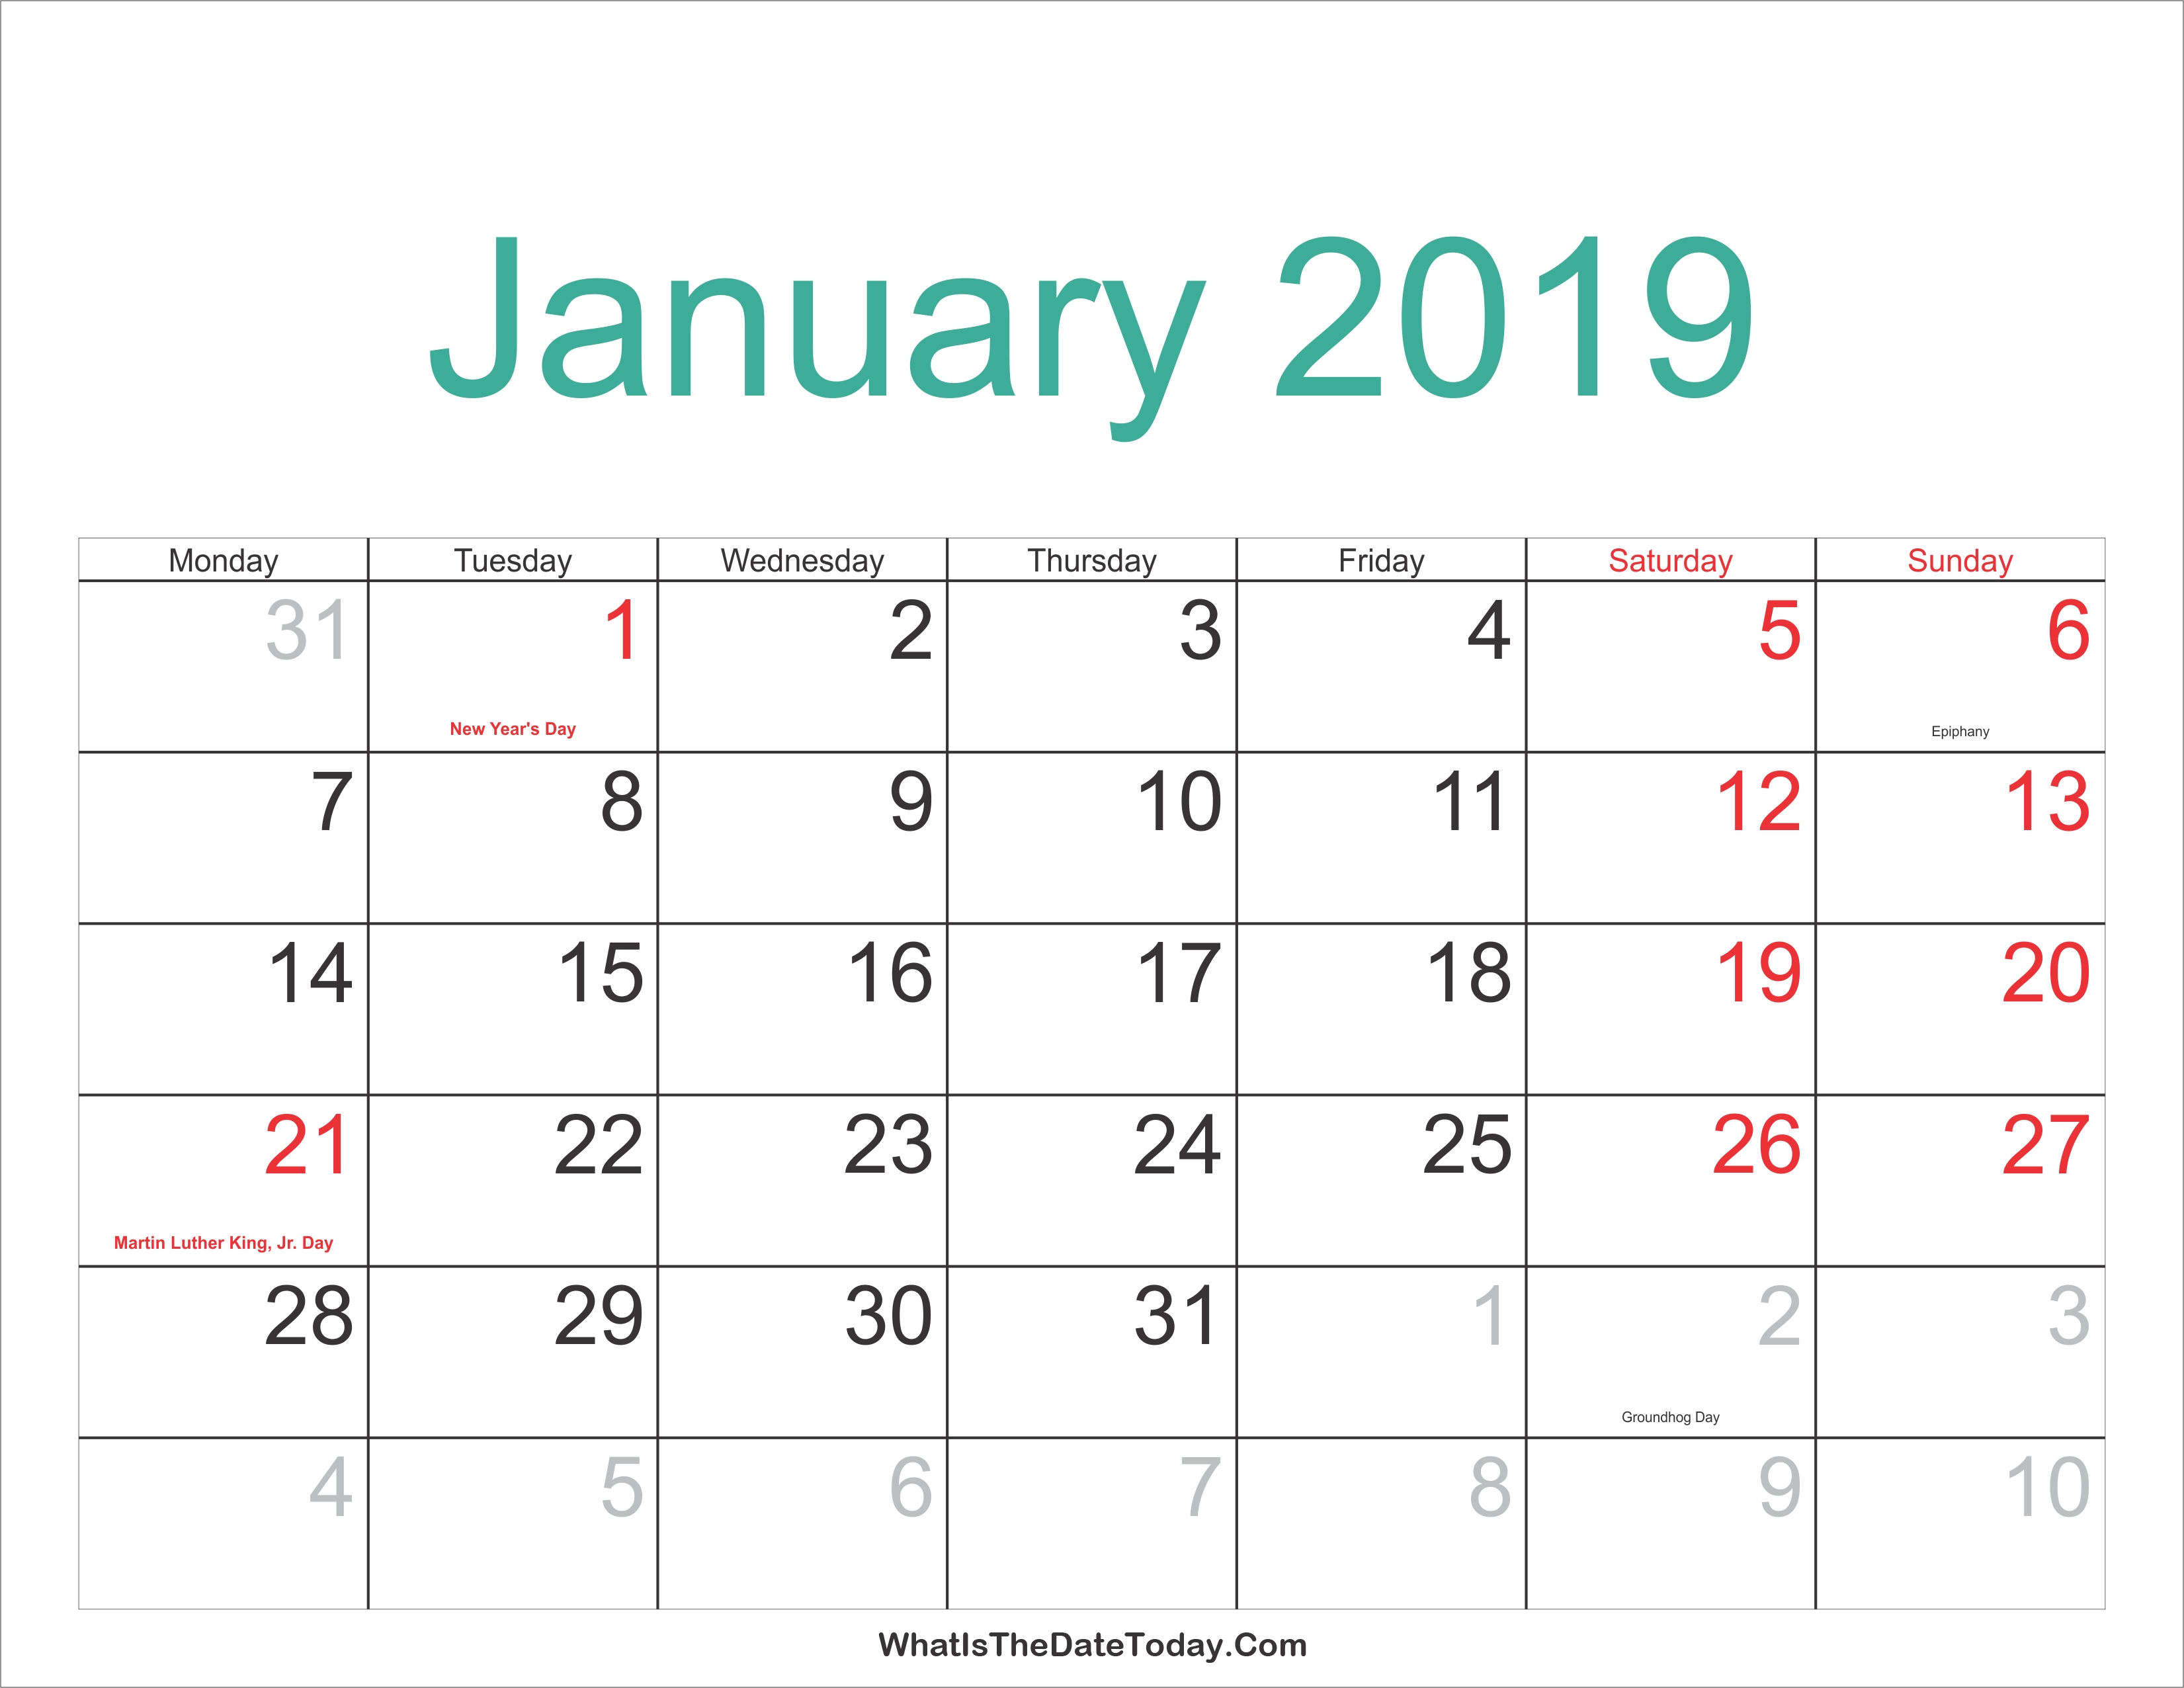 January 2019 Calendar Holidays January 8 2019 Calendar